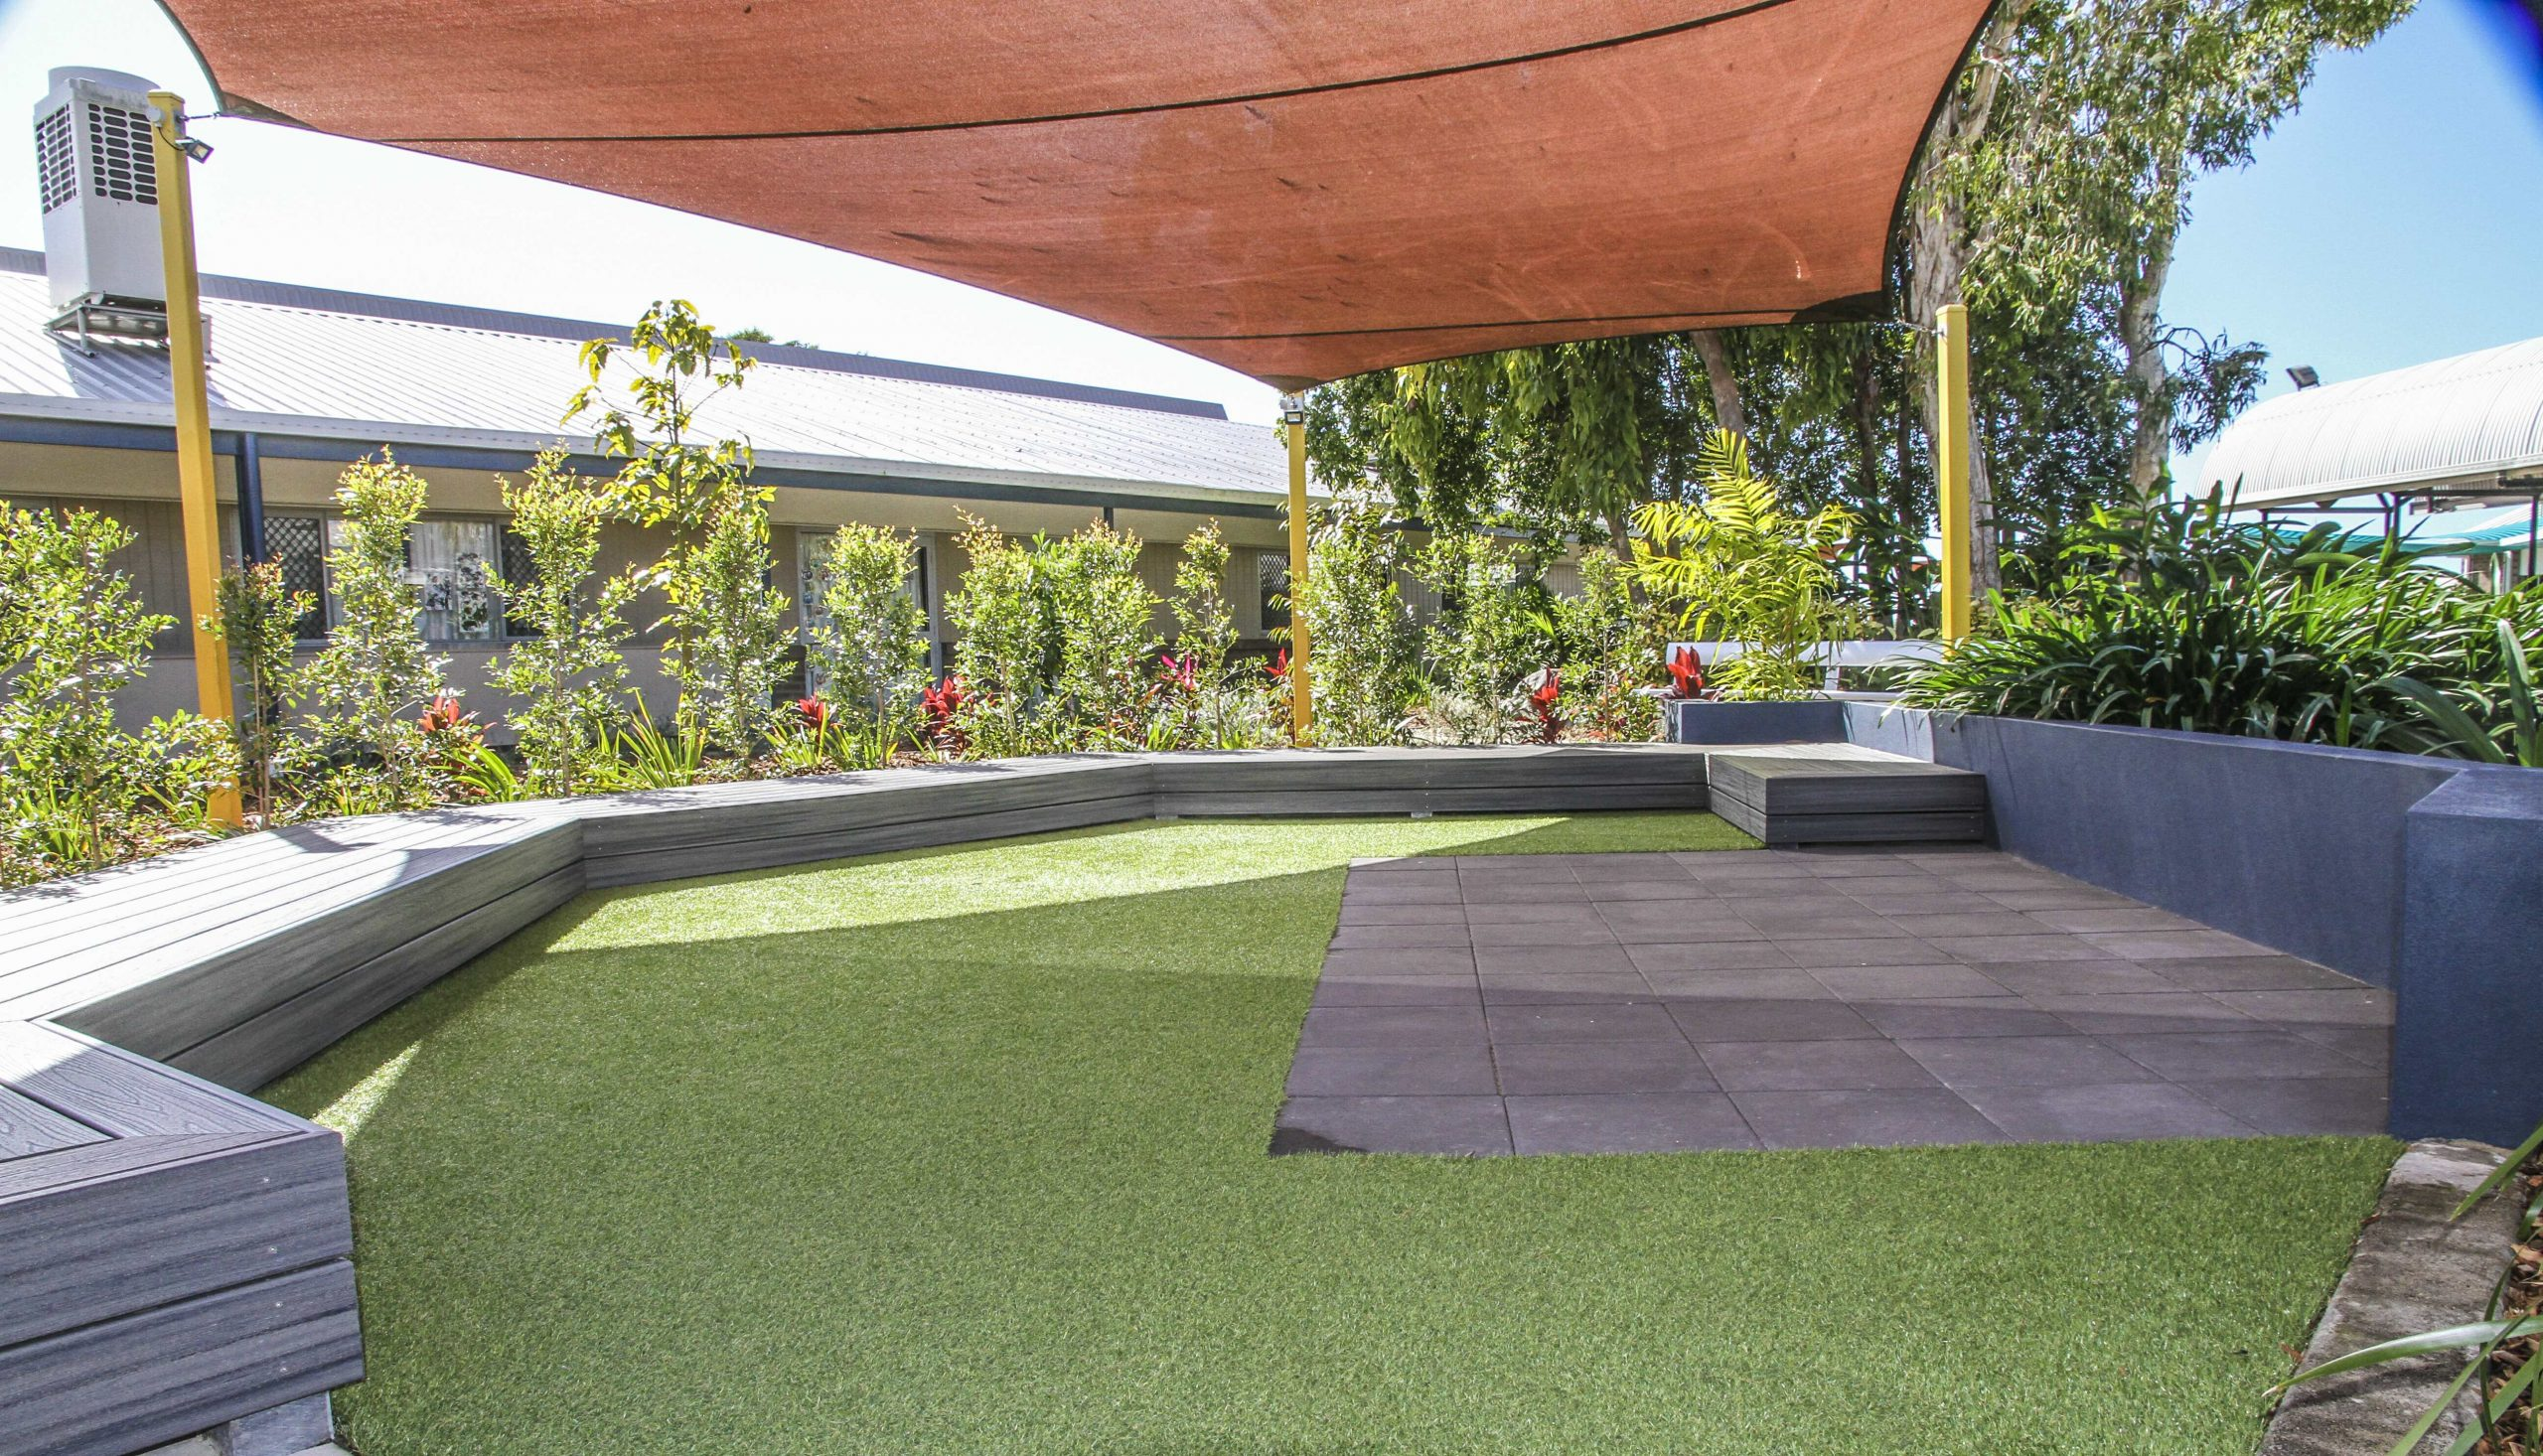 Learning spaces installed by PW Landscapes